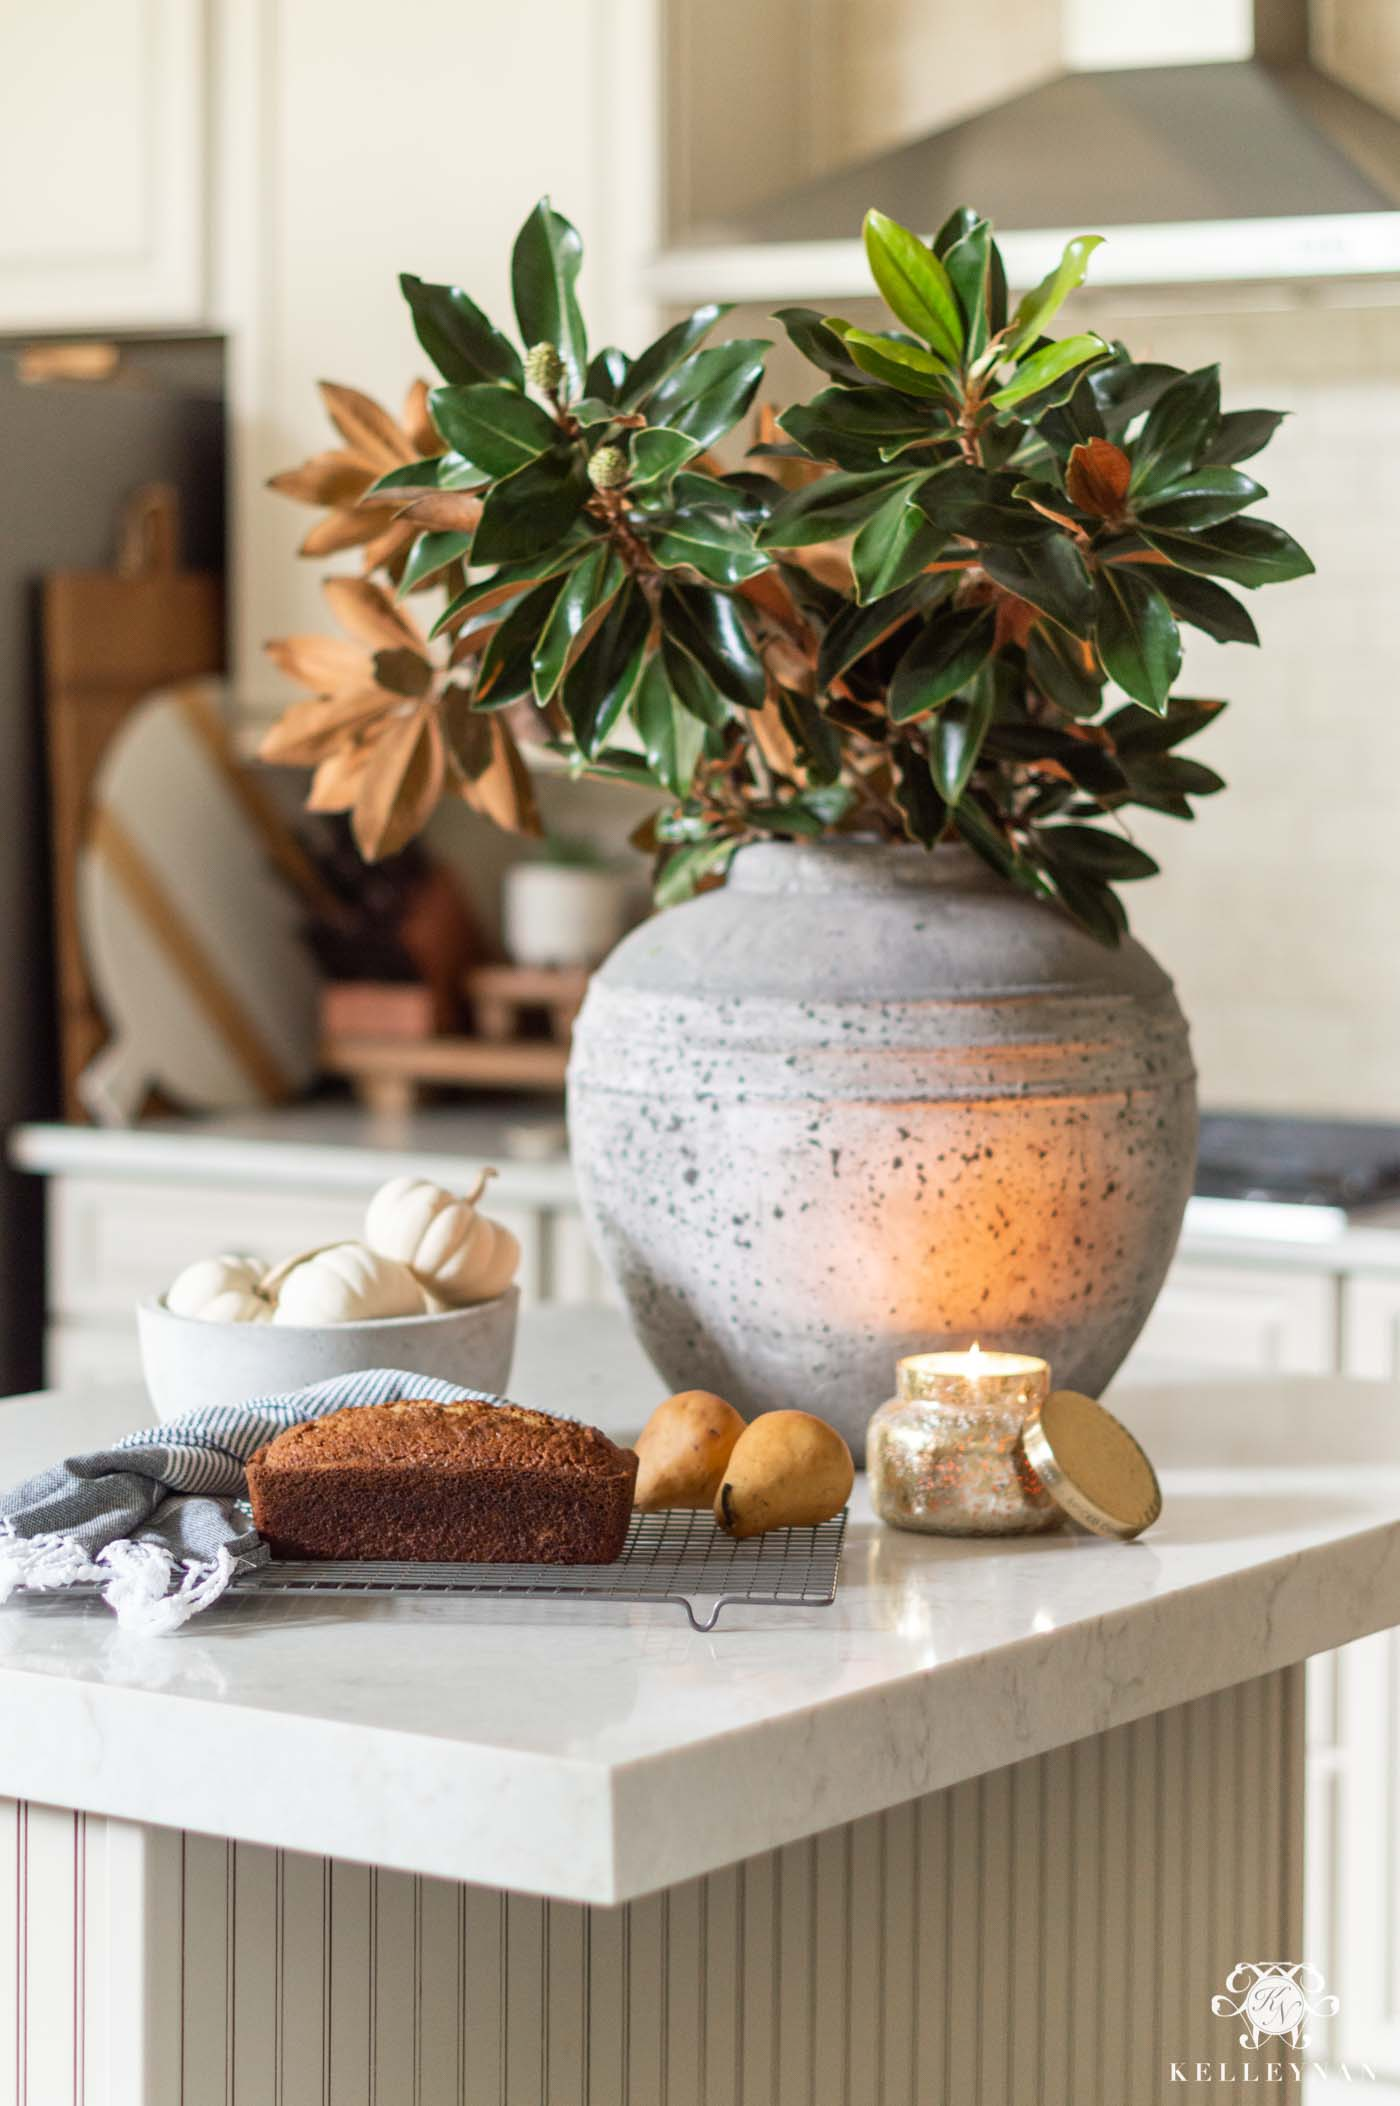 Simple Fall Home Decorating Ideas in the Kitchen